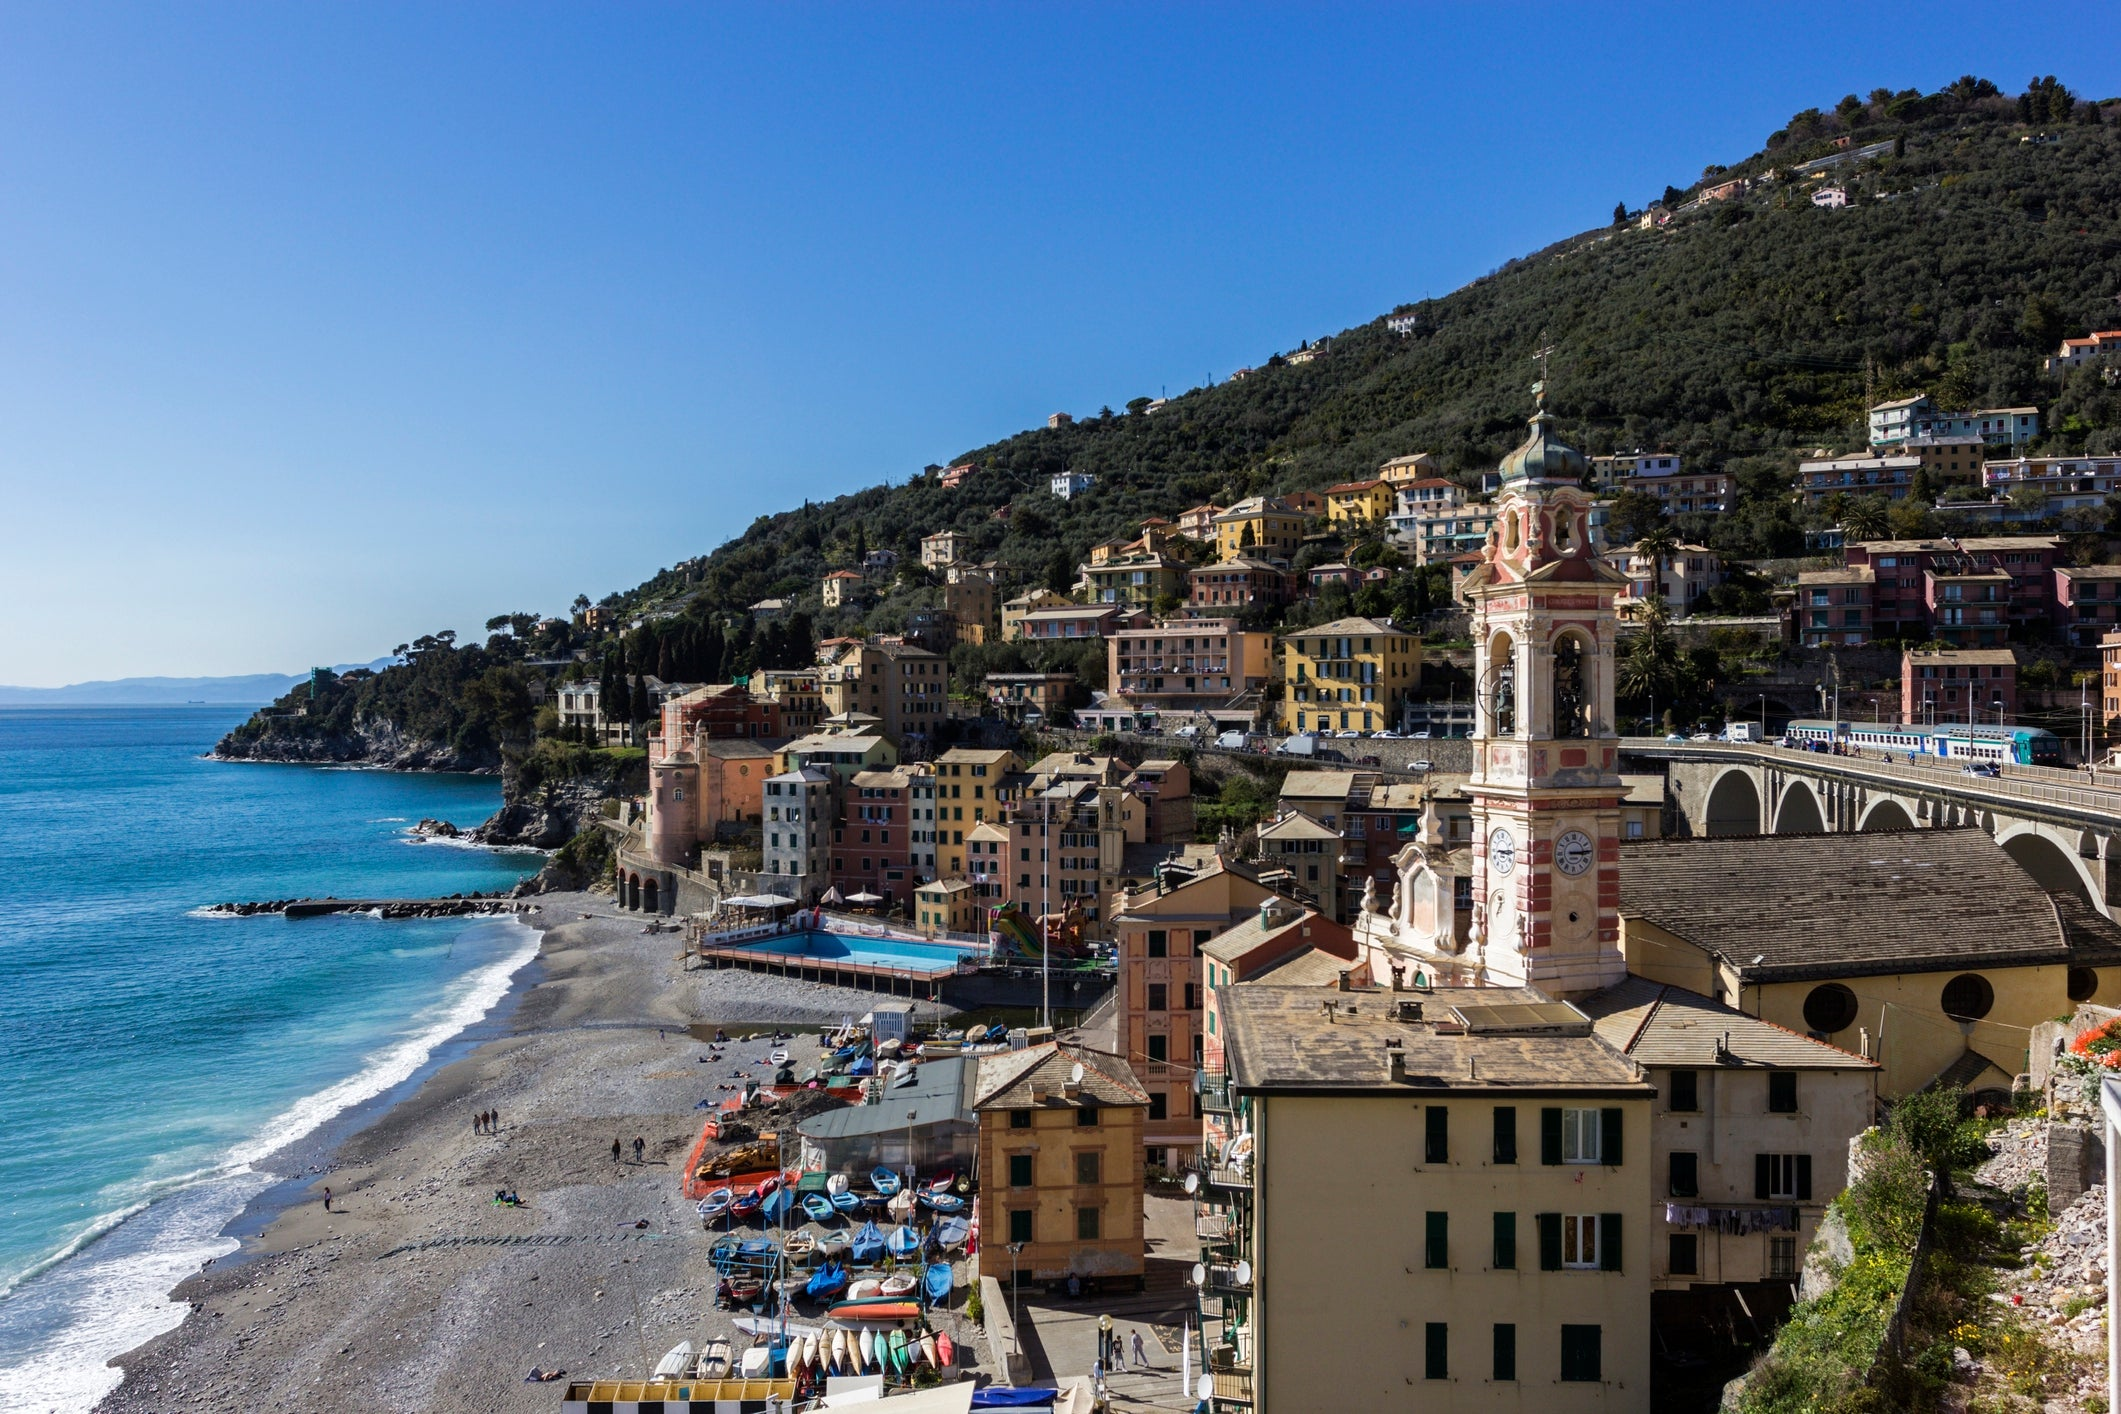 Golfo Paradiso, Italy: A rare unspoiled gem on the Italian Riviera